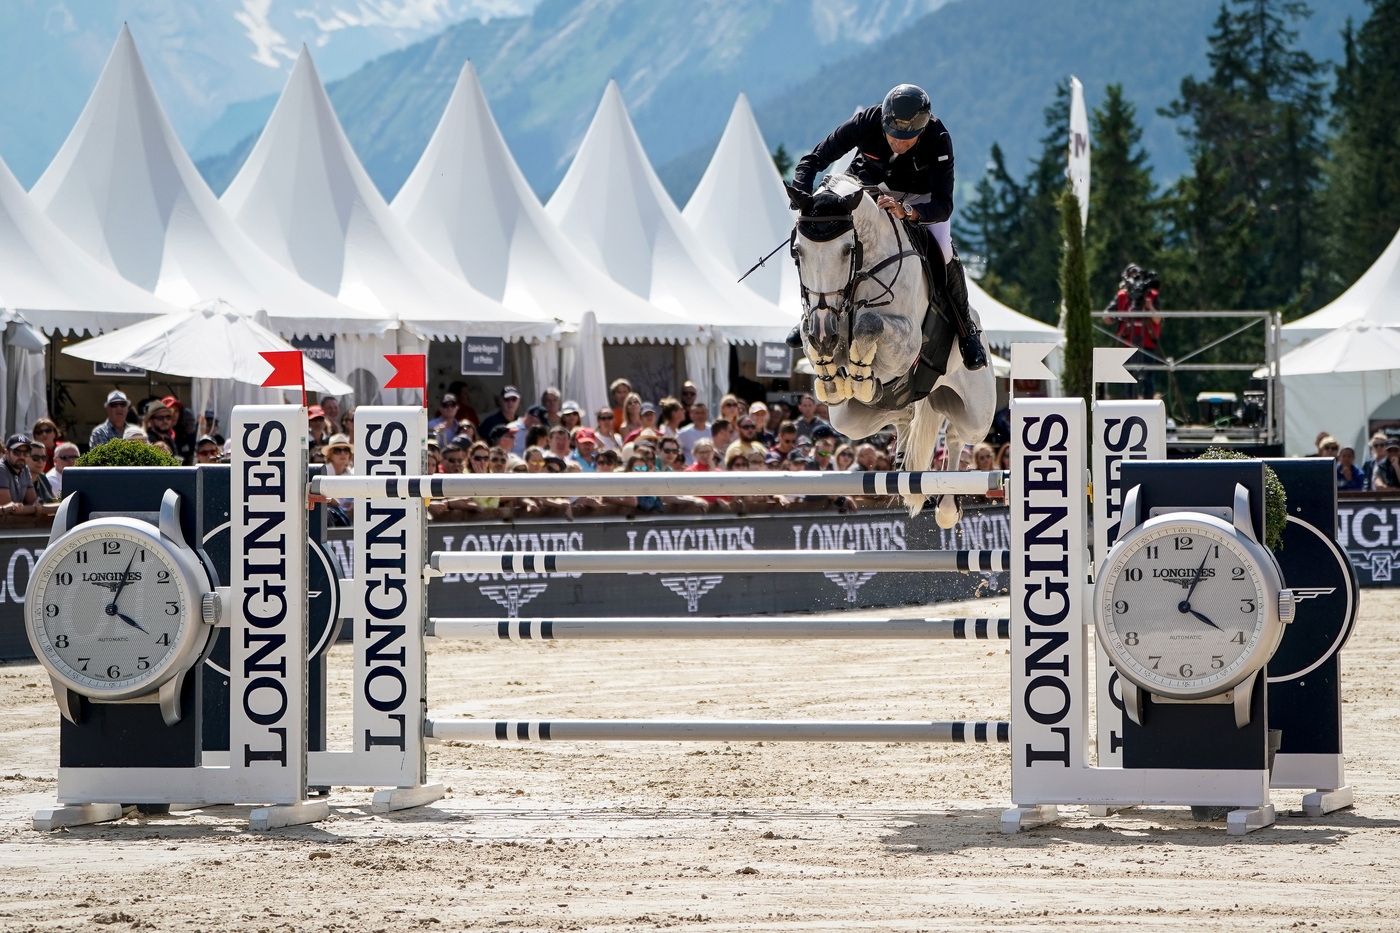 Longines Show Jumping Event: After four days of captivating competitions, Piergiorgio Bucci (ITA) won the Grand Prix Longines in Crans-Montana 3